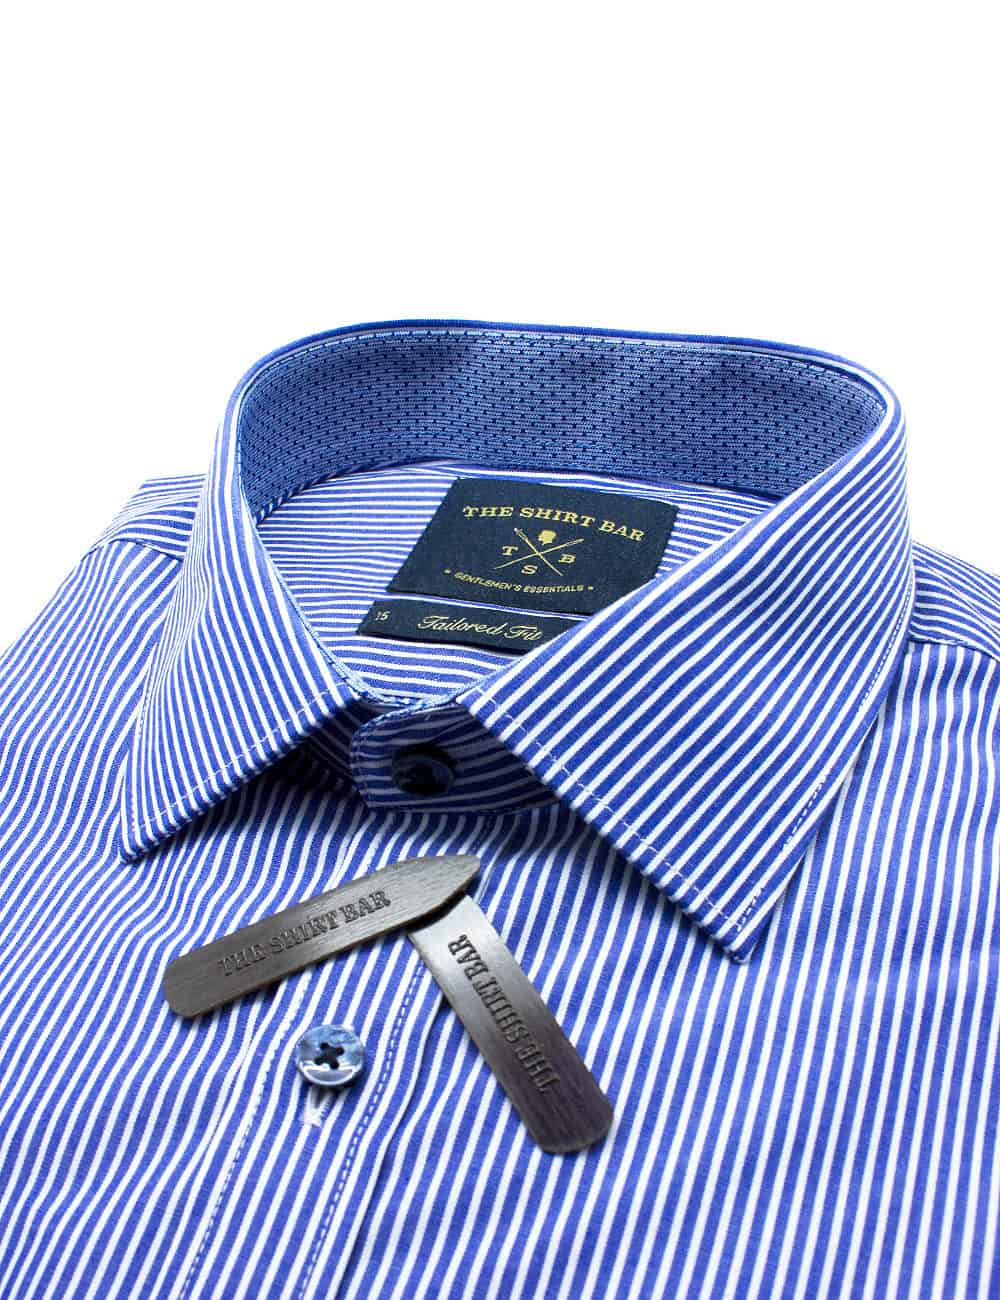 Tailored Fit Cotton Blend Navy with White Stripes Spill Resist Long Sleeve Single Cuff Shirt TF2F2.10